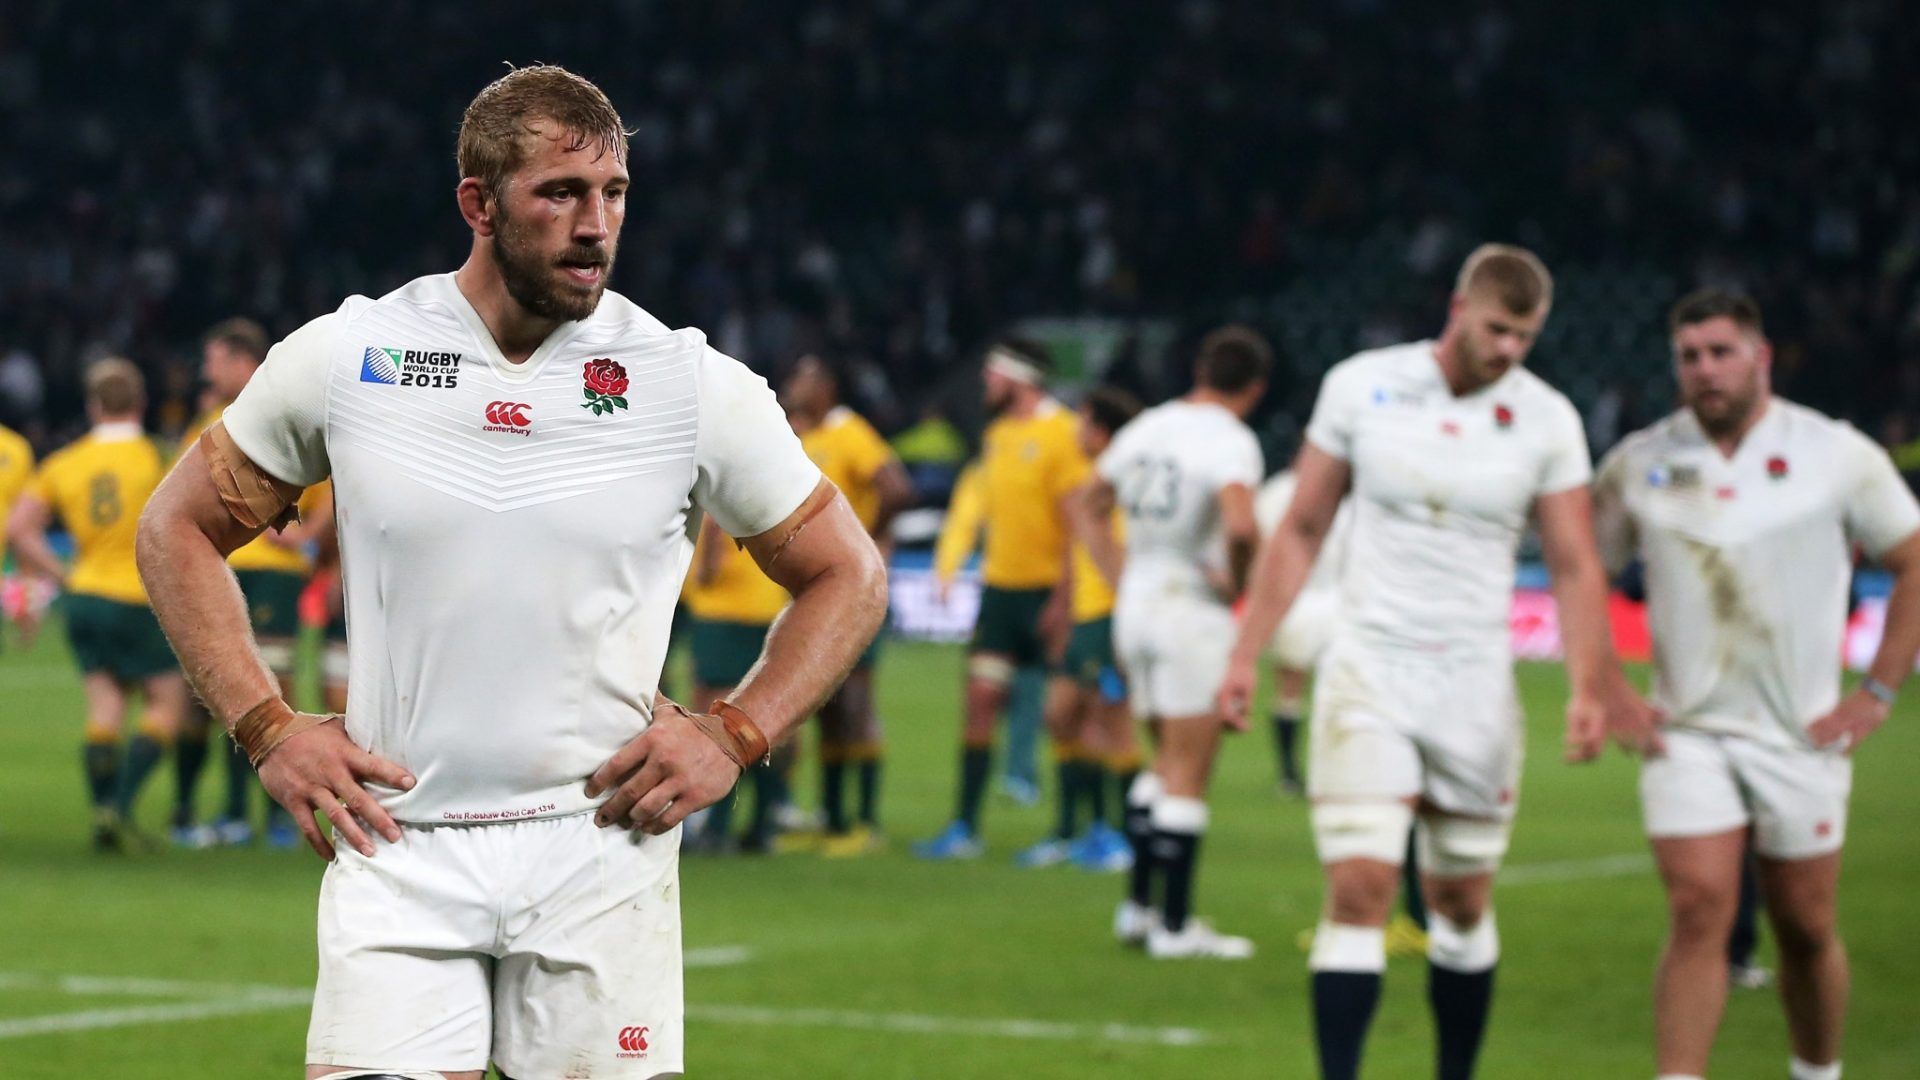 Rugby Union's Chris Robshaw disappointed after Australia defeat